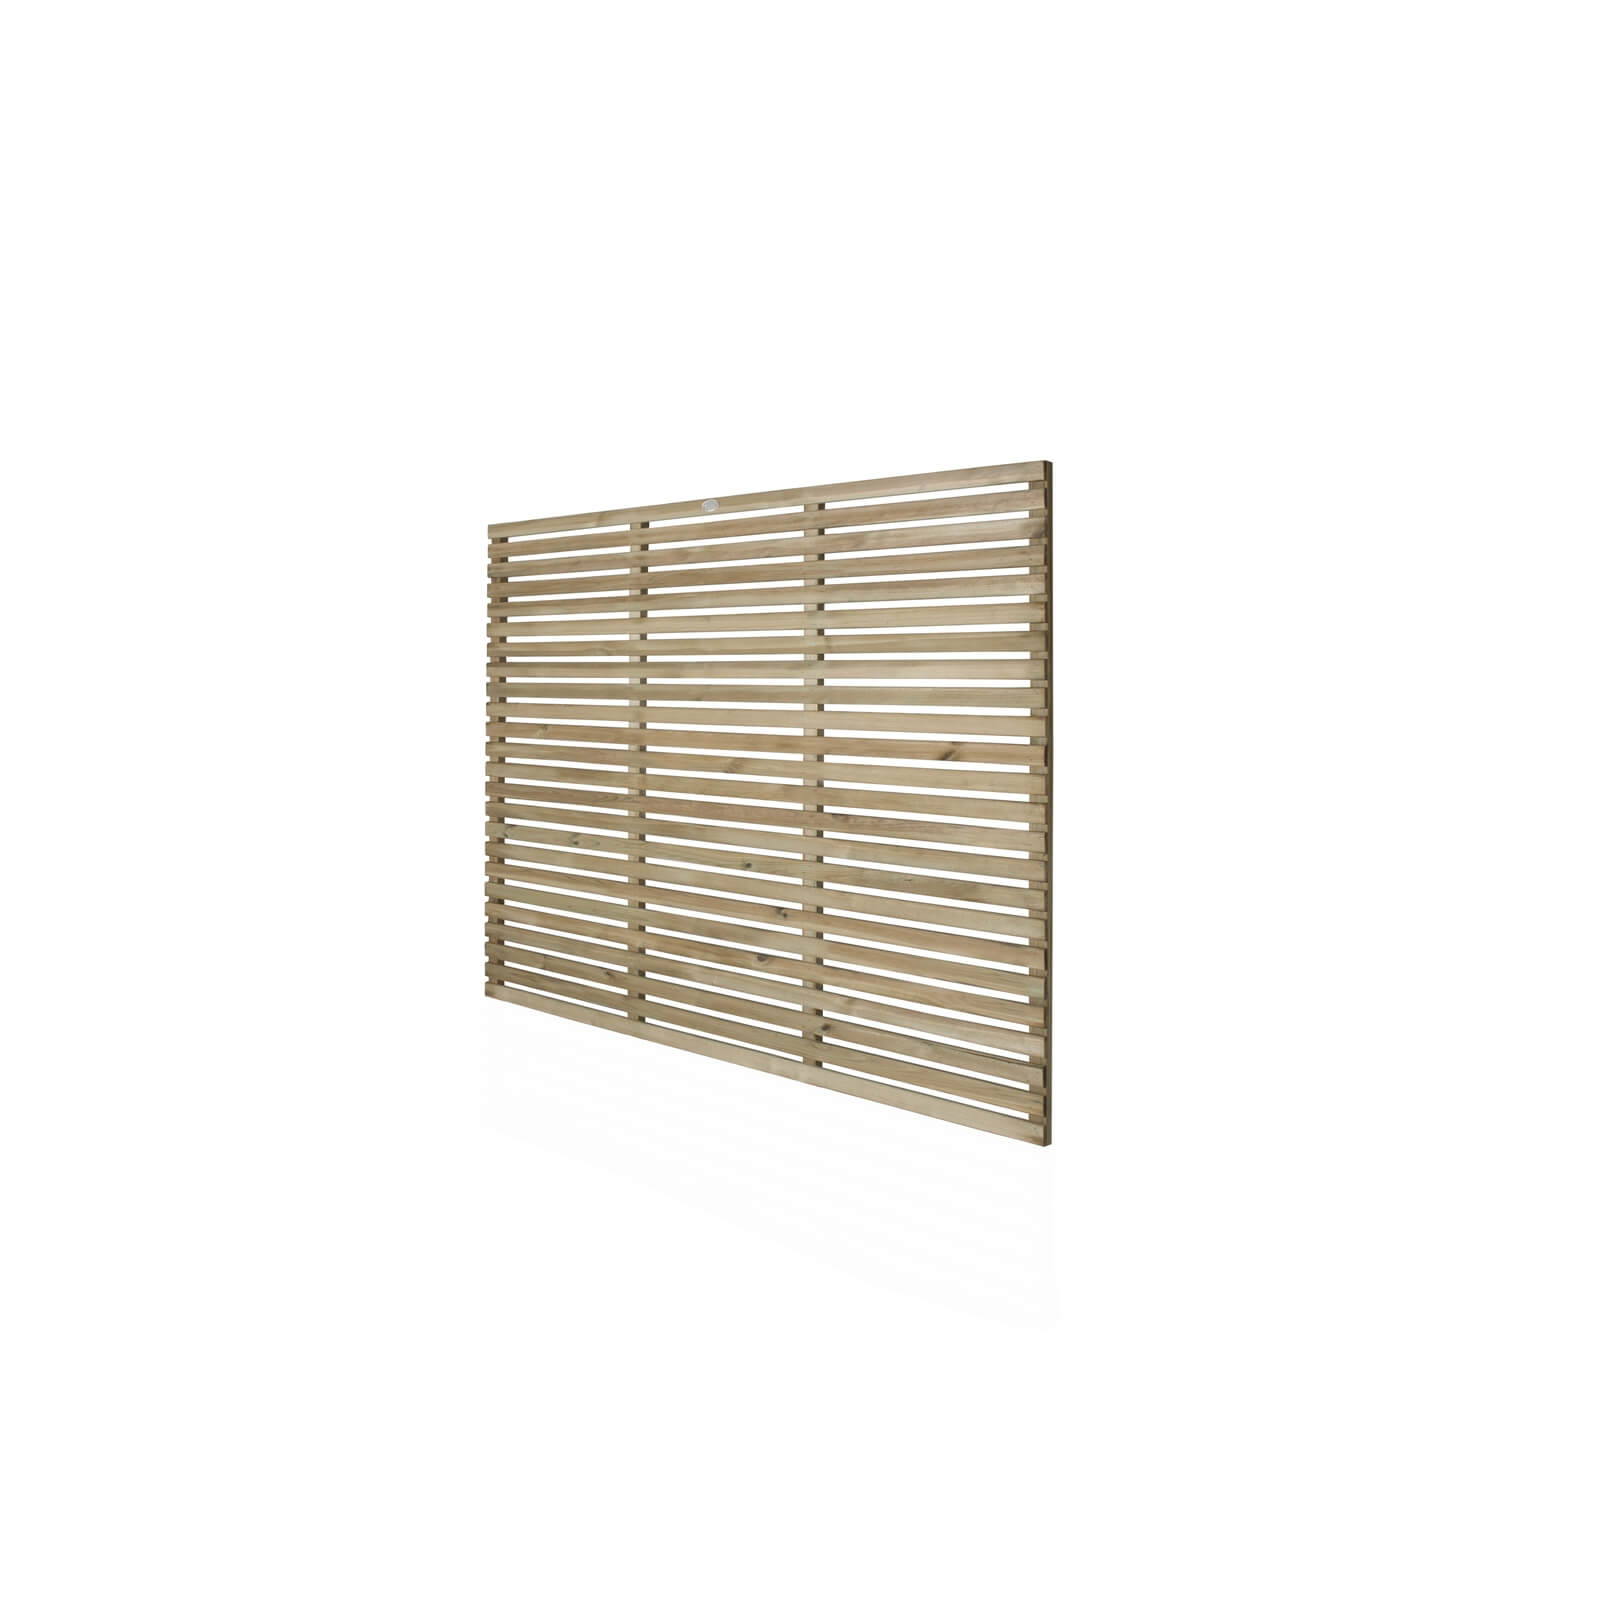 6ft x 5ft (1.8m x 1.5m) Pressure Treated Contemporary Slatted Fence Panel - Pack of 3